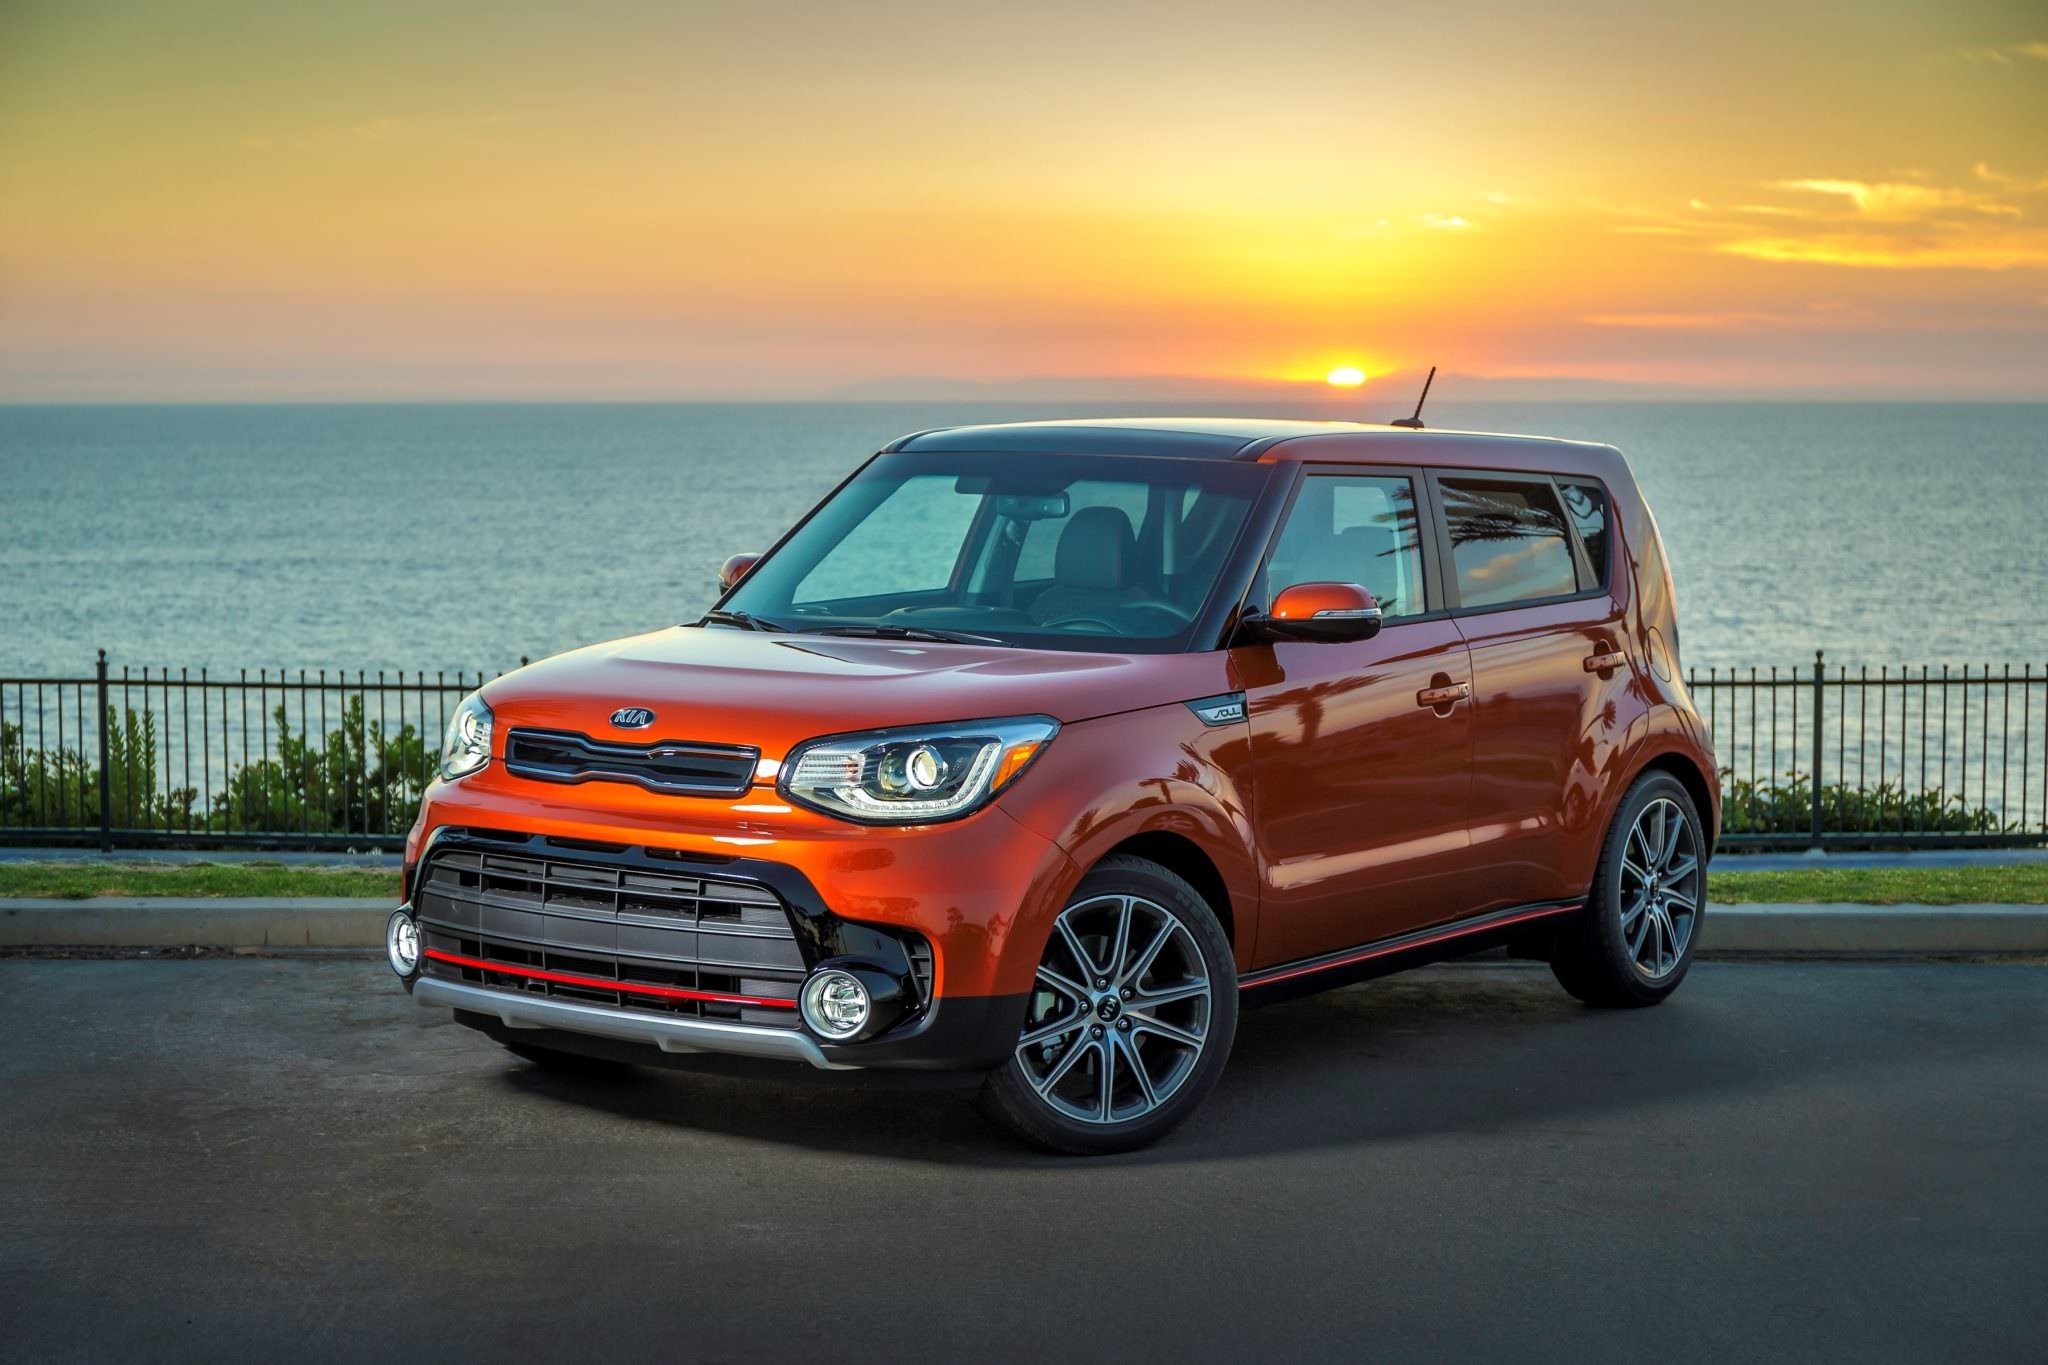 autoshow trail news kia ster soul awd all archives tag the souls car chicago concept korean at revealed blog